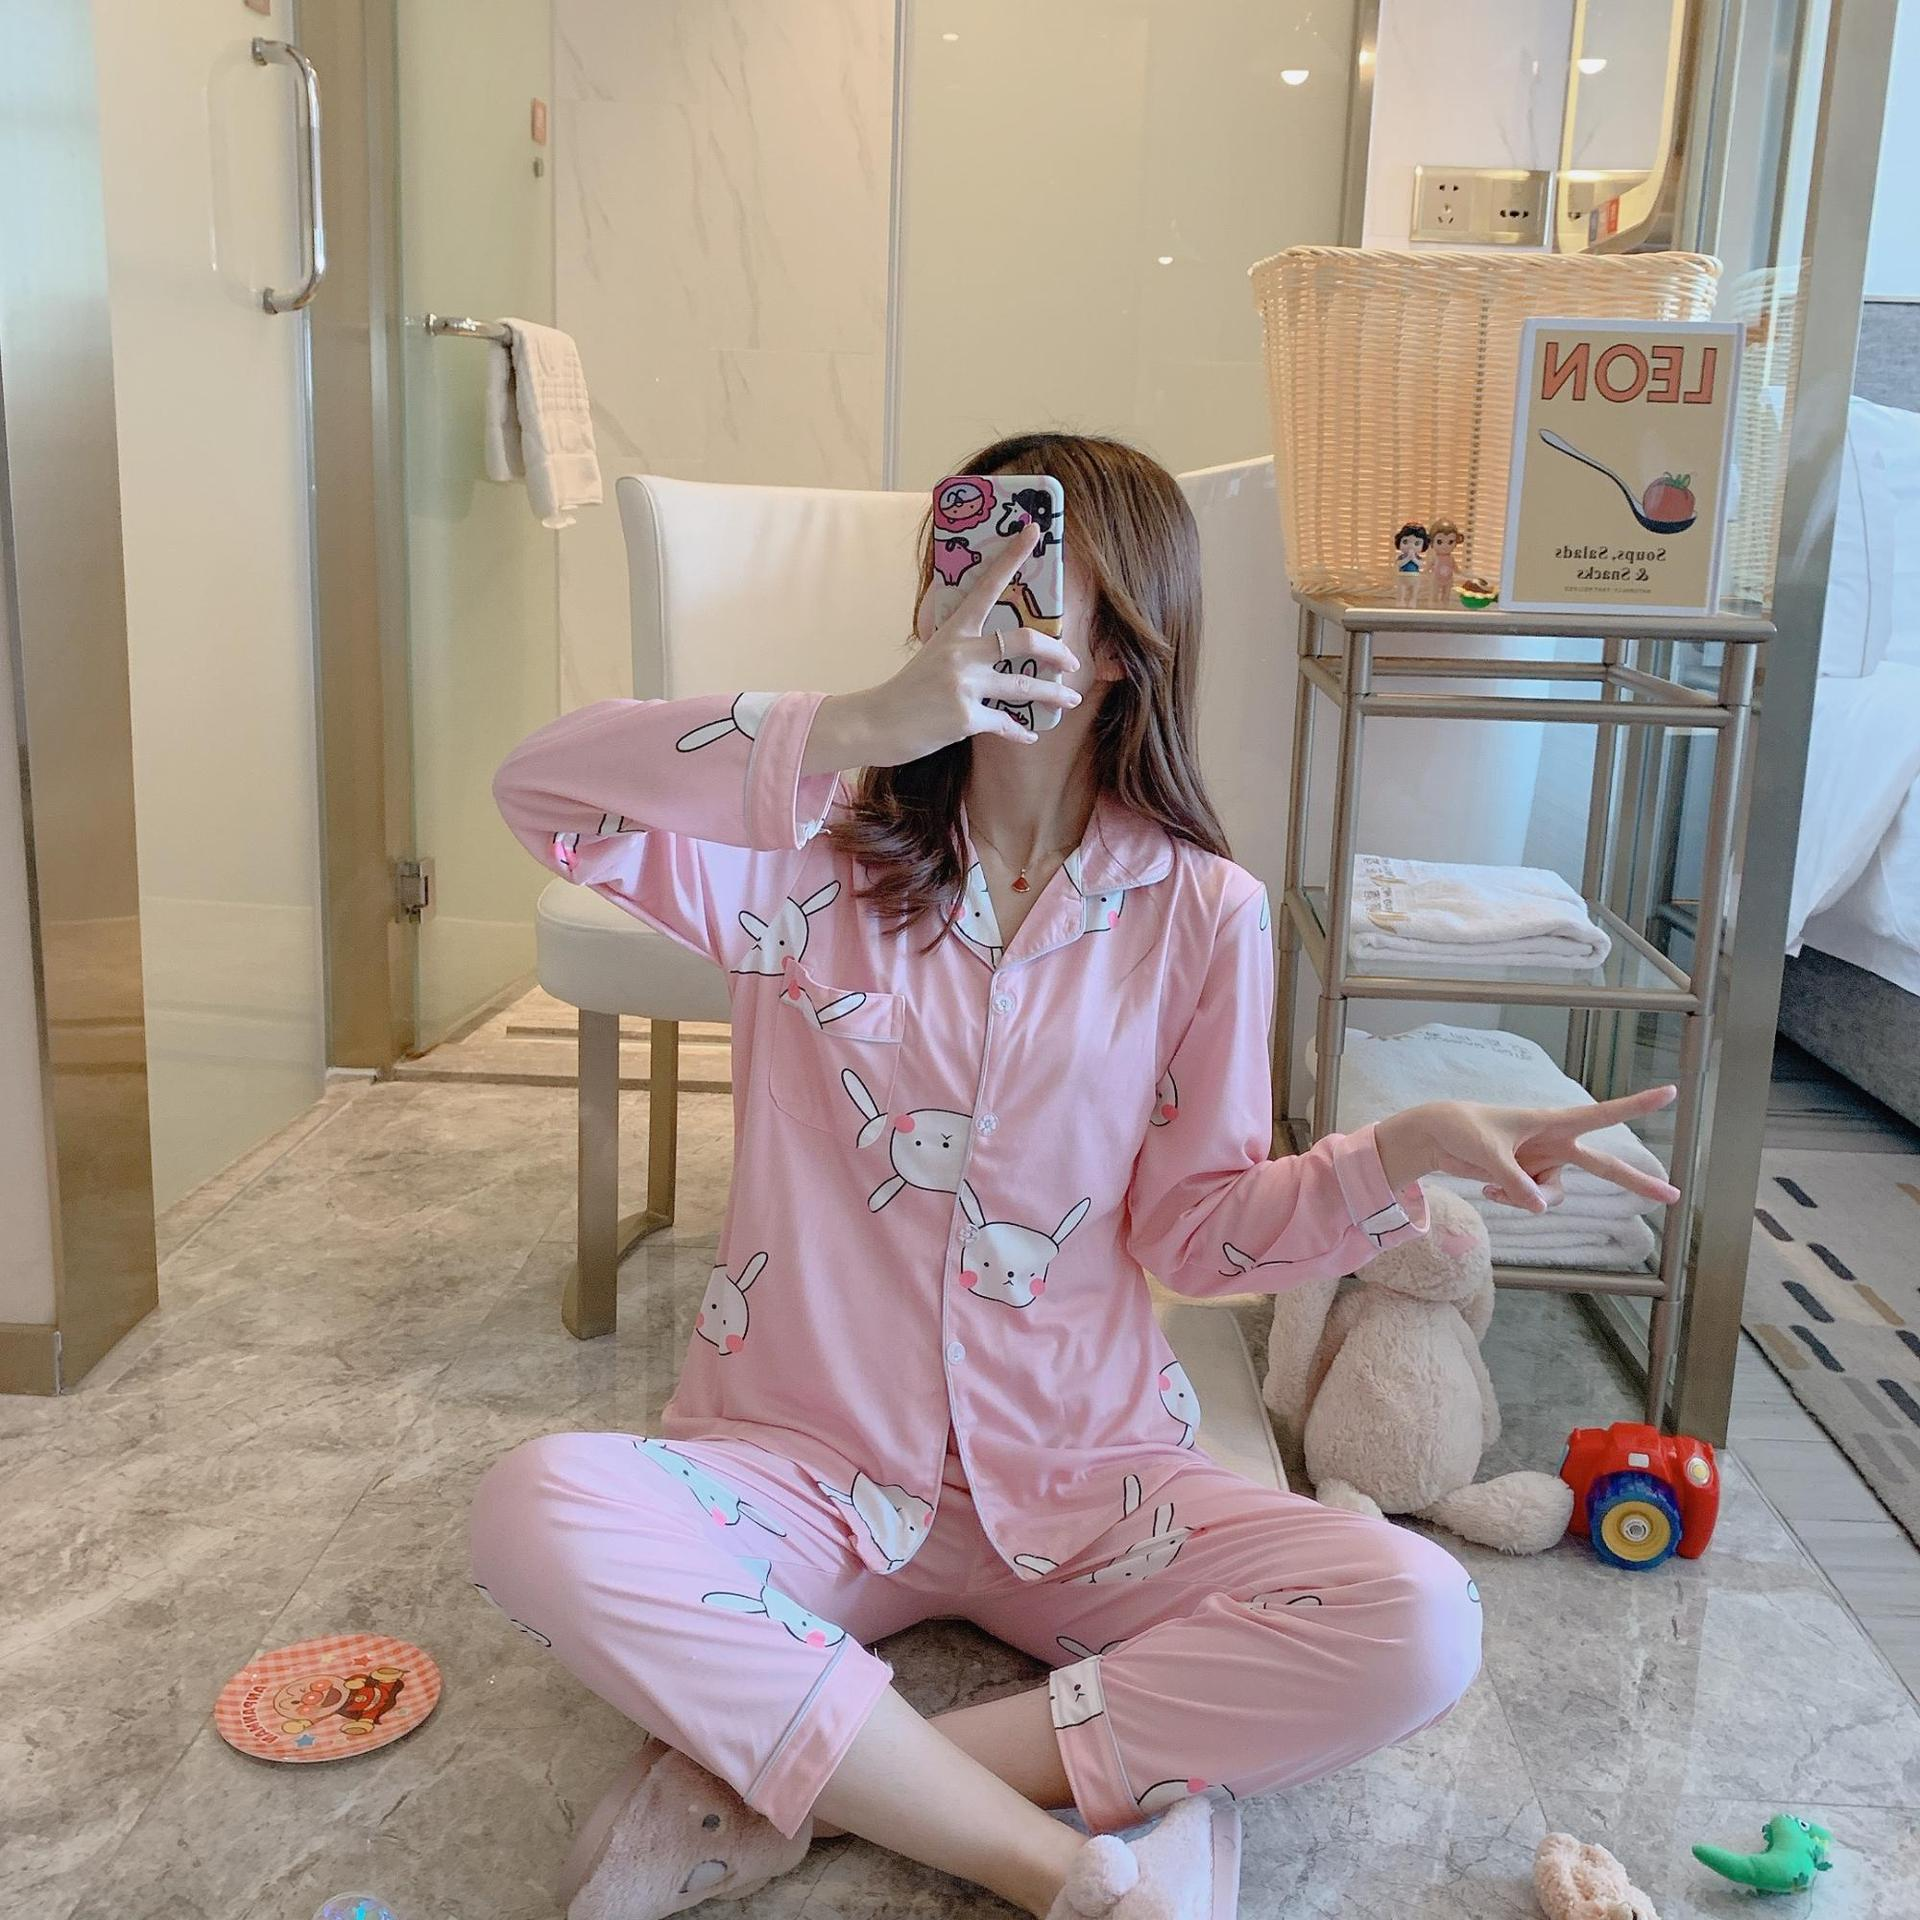 Spring And Autumn New Style Korean-style Fashion Cardigan Women's Tracksuit Pajamas Round Face Rabbit Casual Cartoon Sweet Qmilc